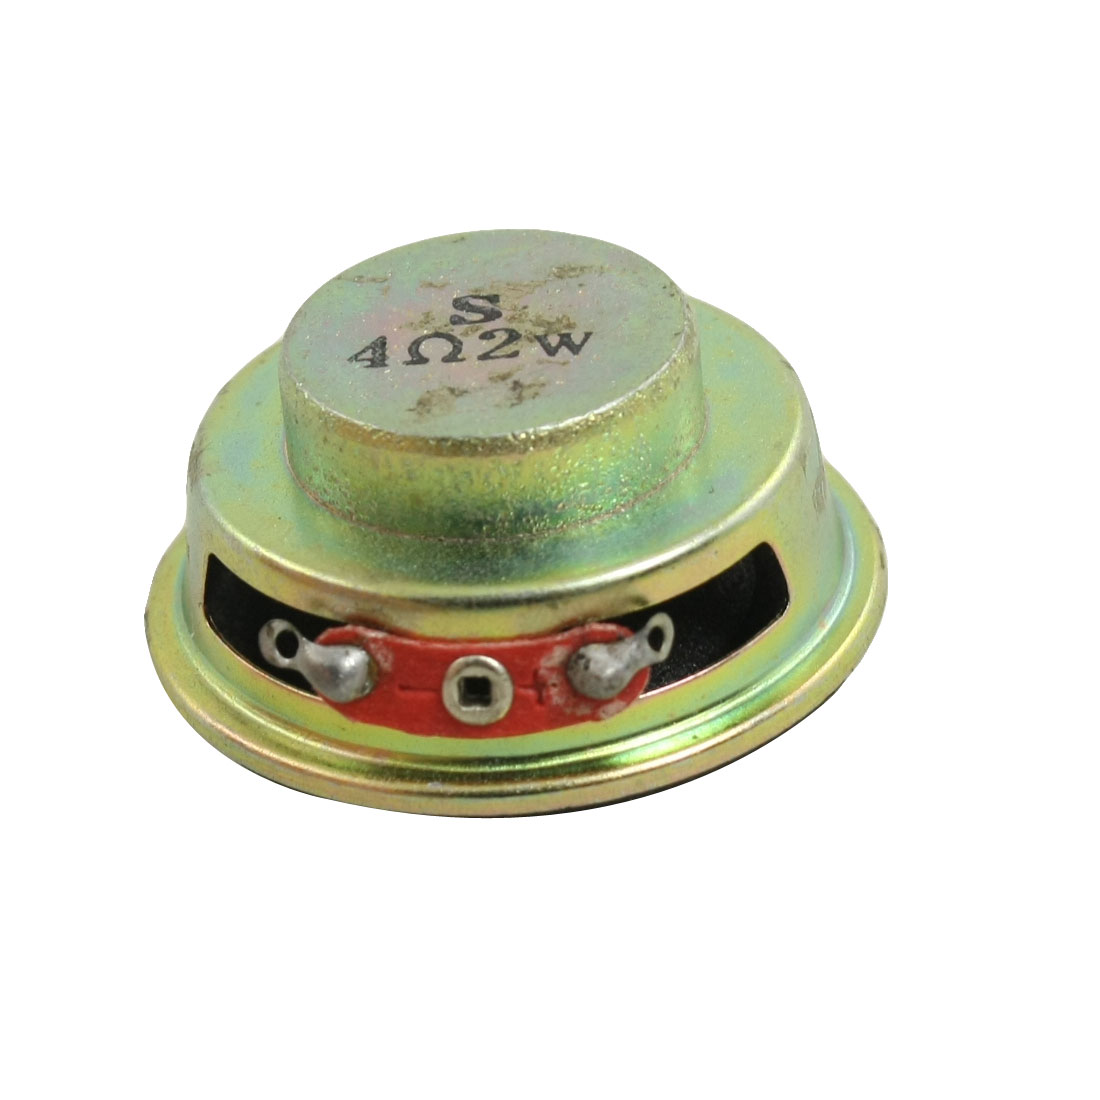 "4 Ohm 2W 1.6"" Dia. Multimedia Speakers Internal Magnet Speaker"